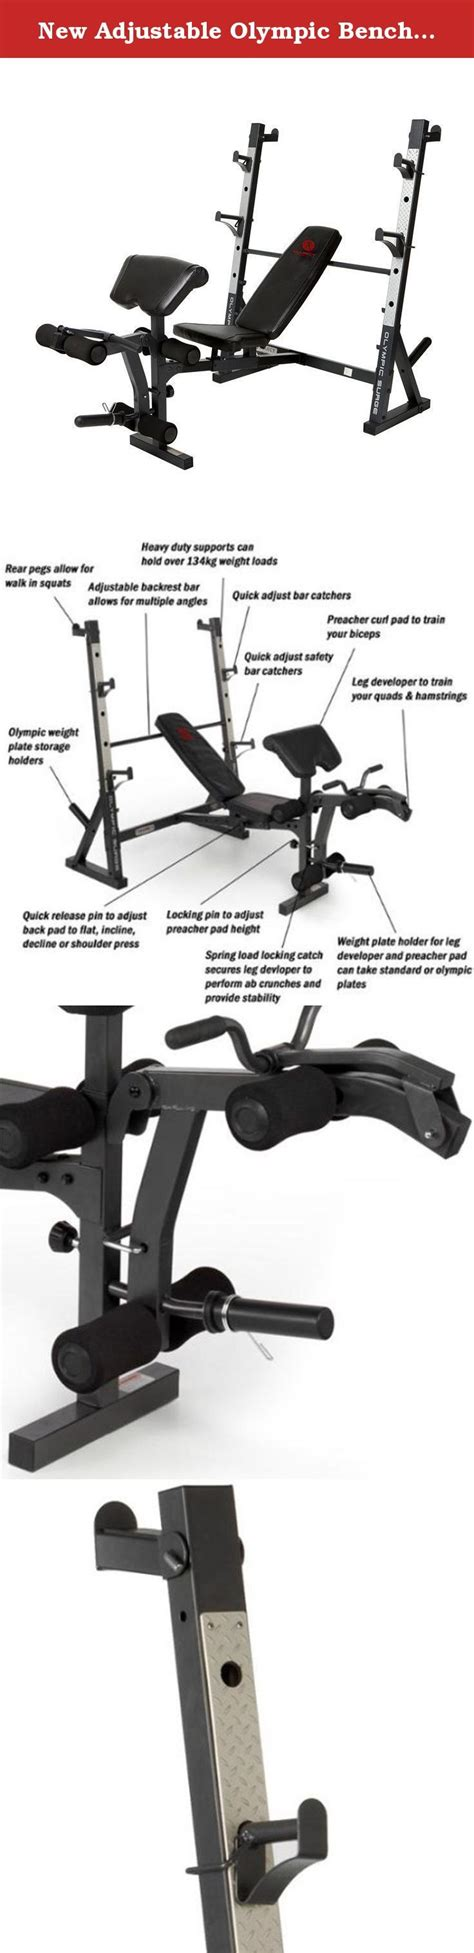 weight bench safety pins 17 best ideas about marcy home gym on pinterest gym